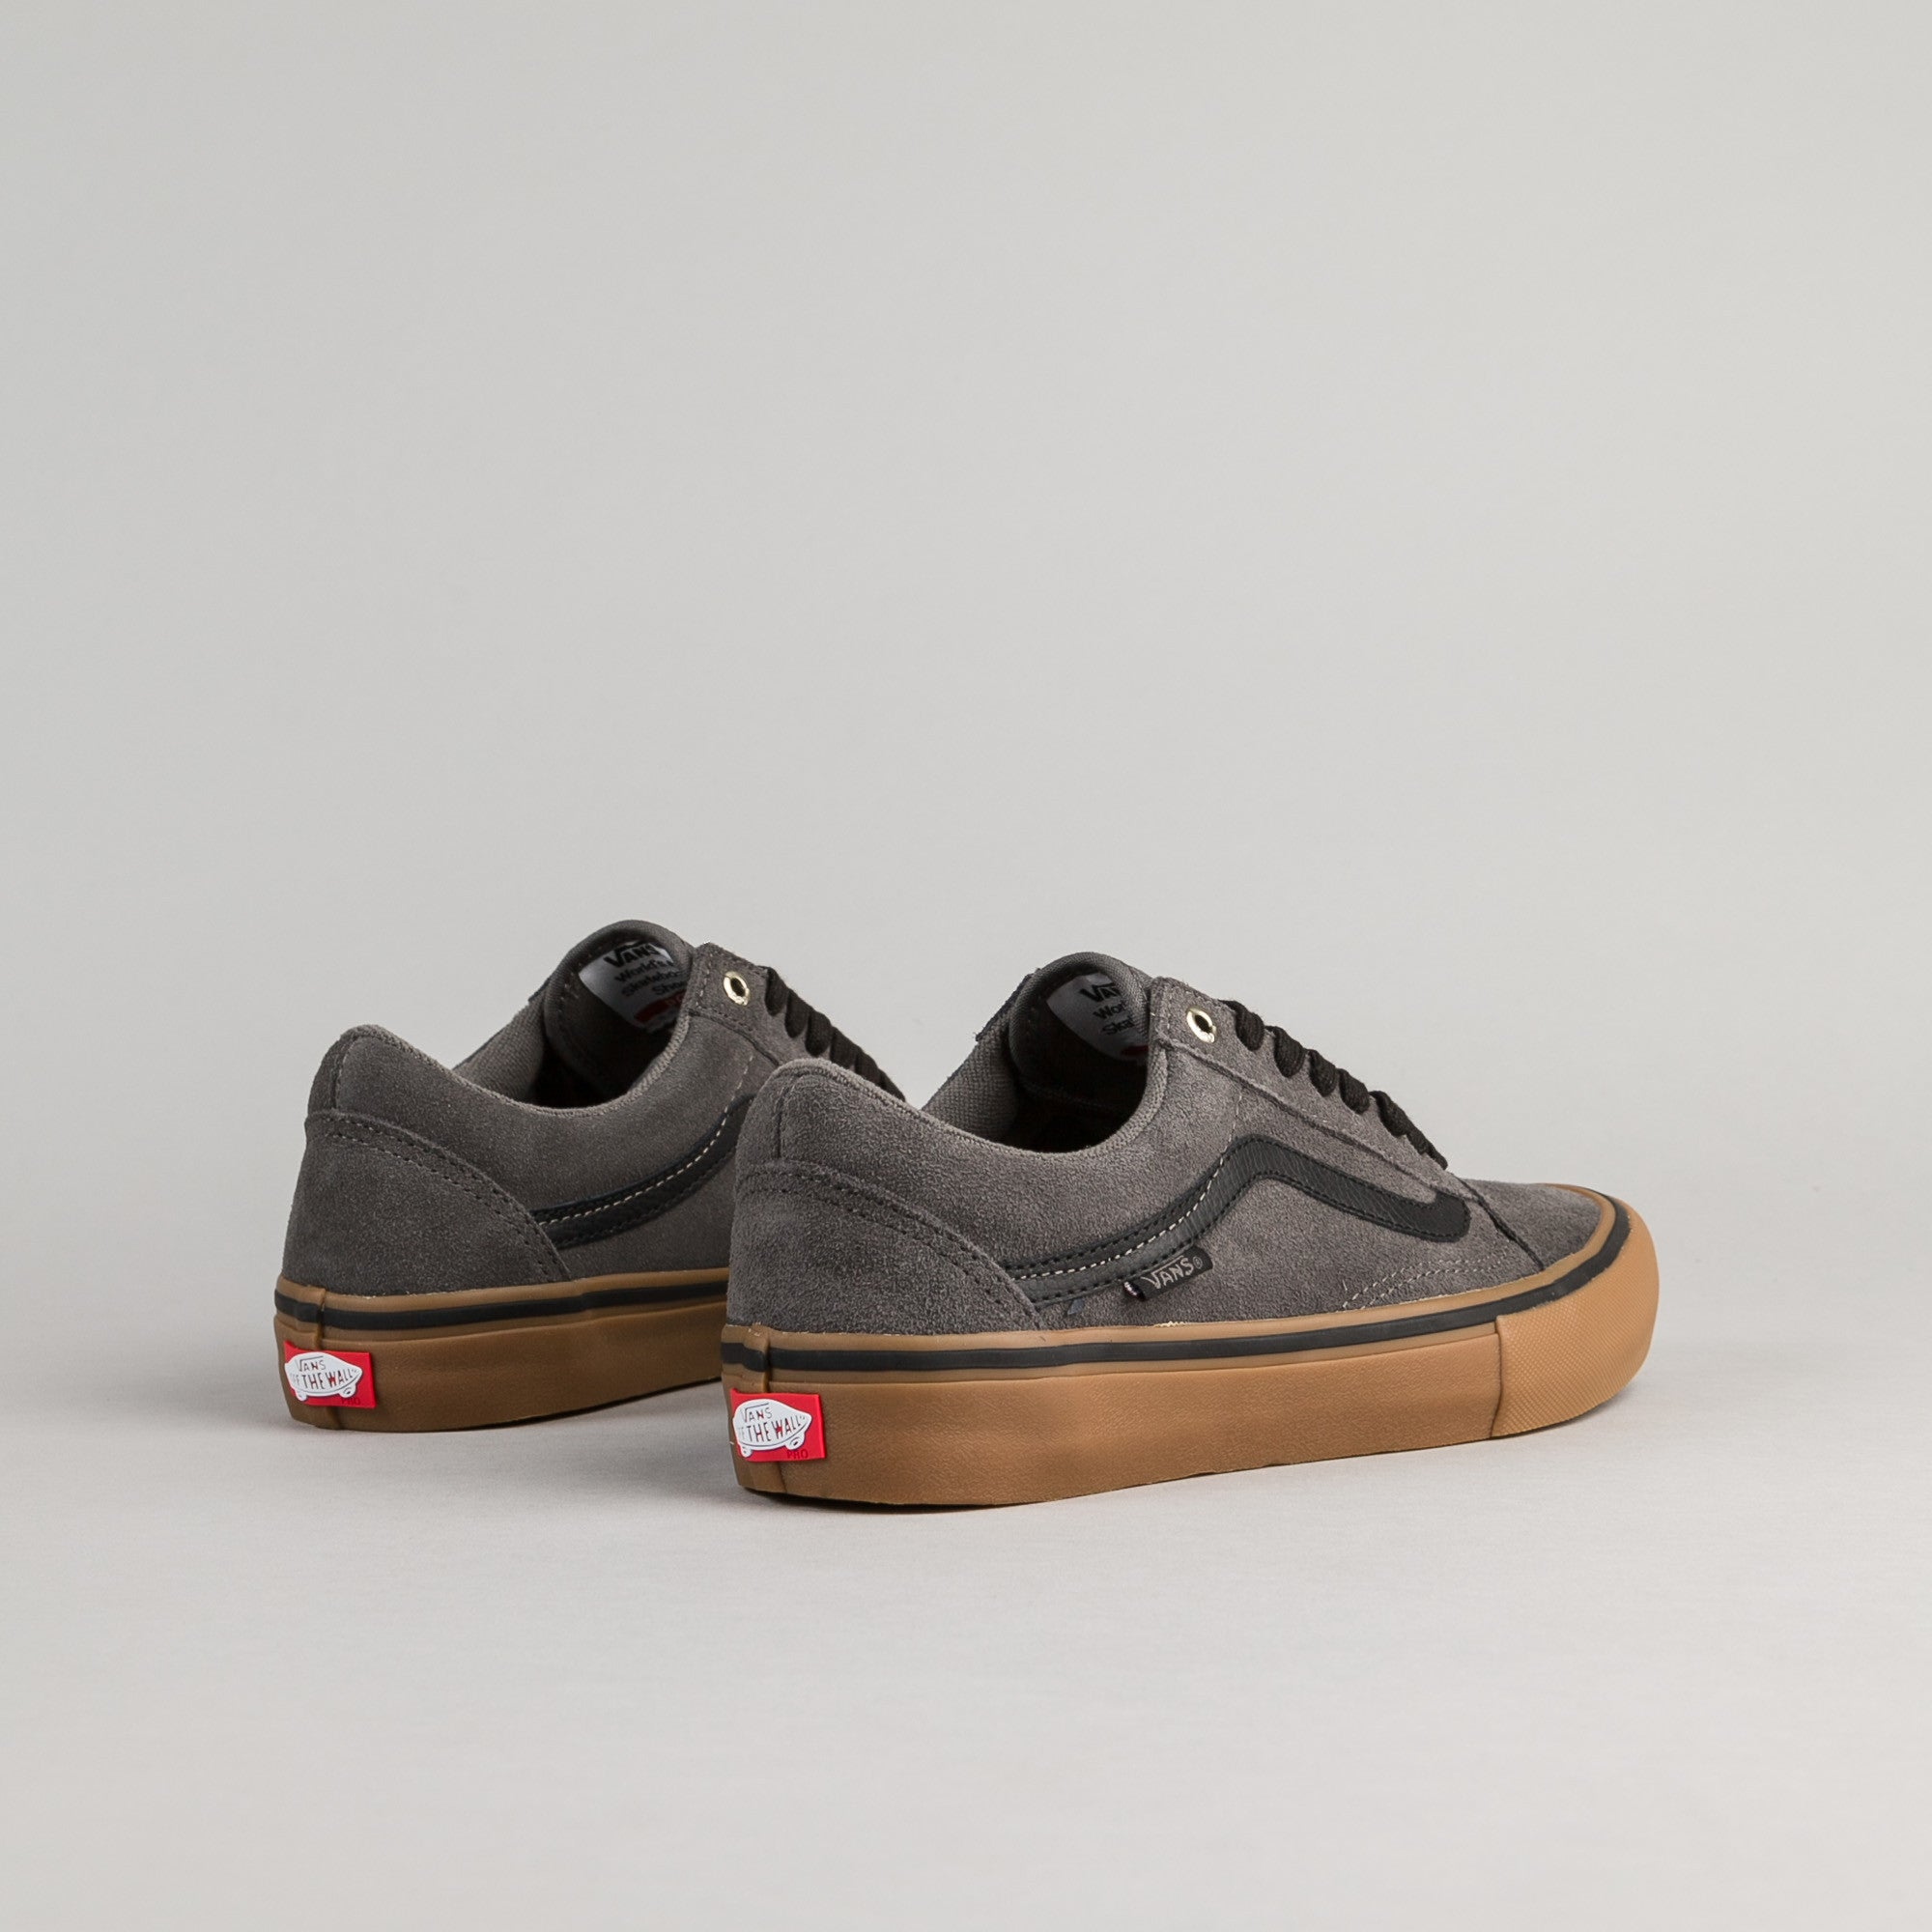 Vans Old Skool Pro Shoes Grey Black Gum | Flatspot